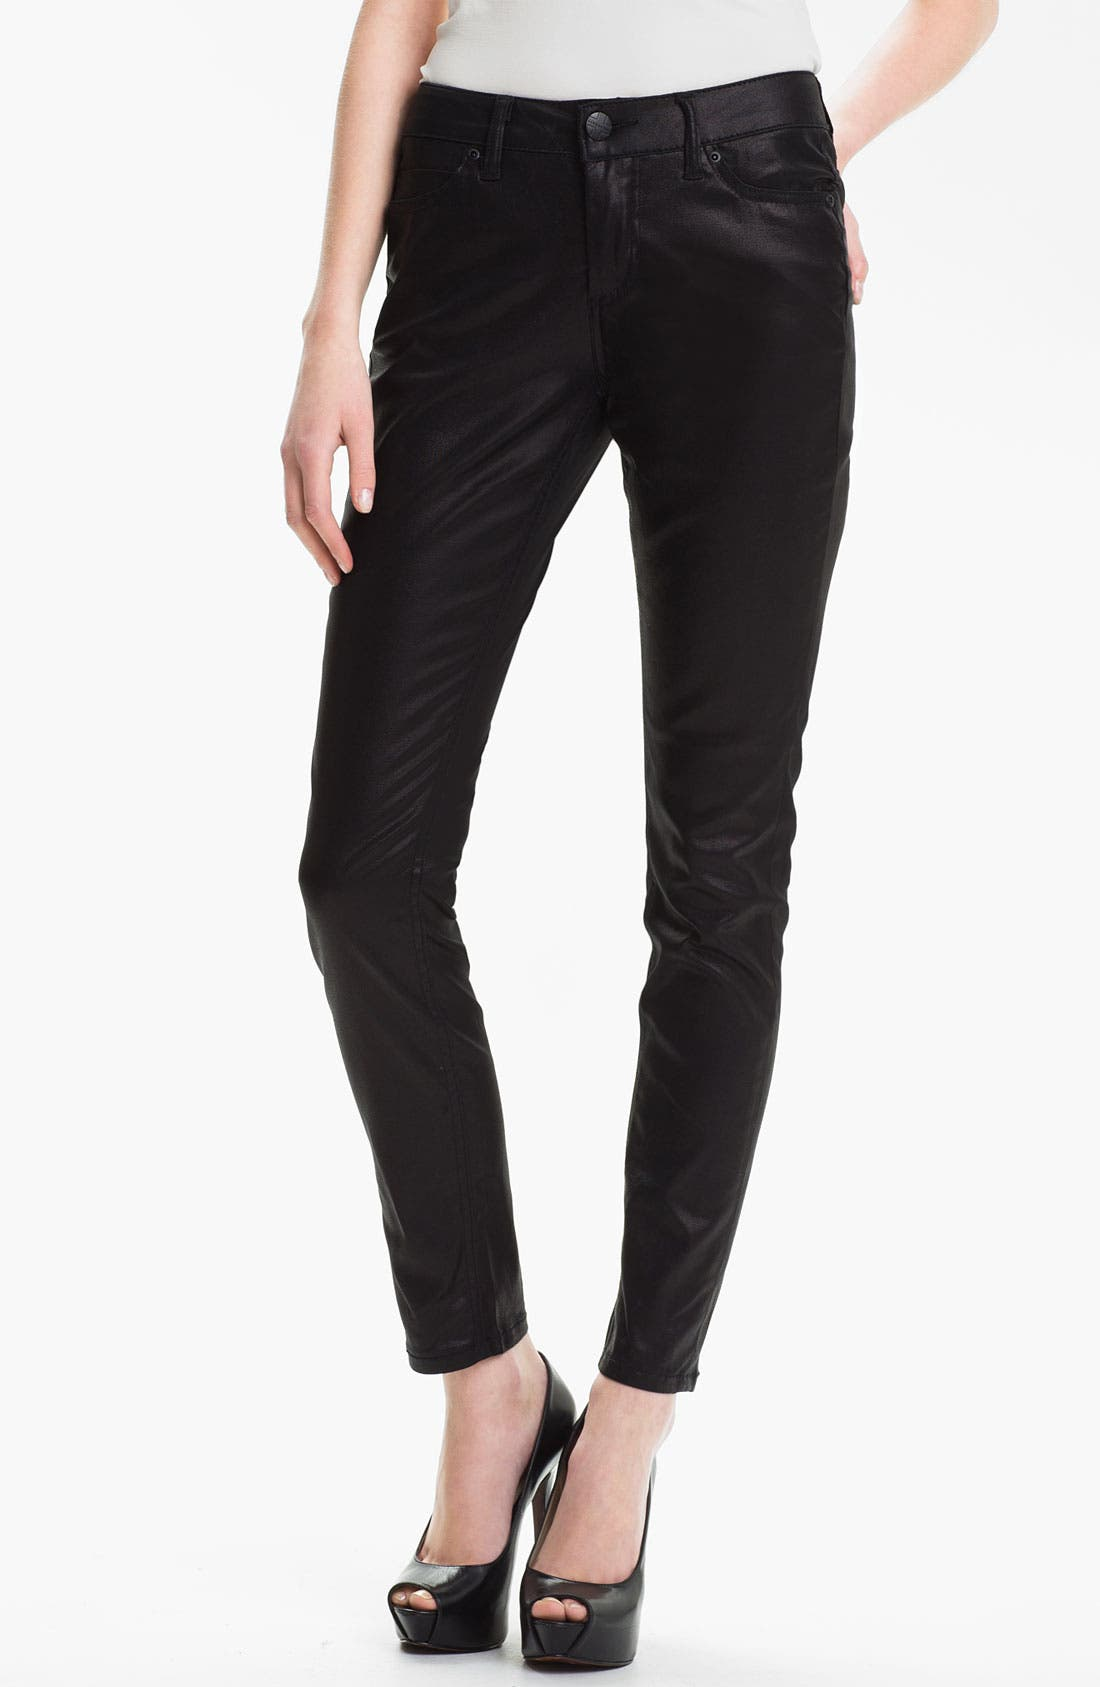 Alternate Image 1 Selected - Liverpool Jeans Company 'Abby' Coated Skinny Jeans (Petite) (Online Only)